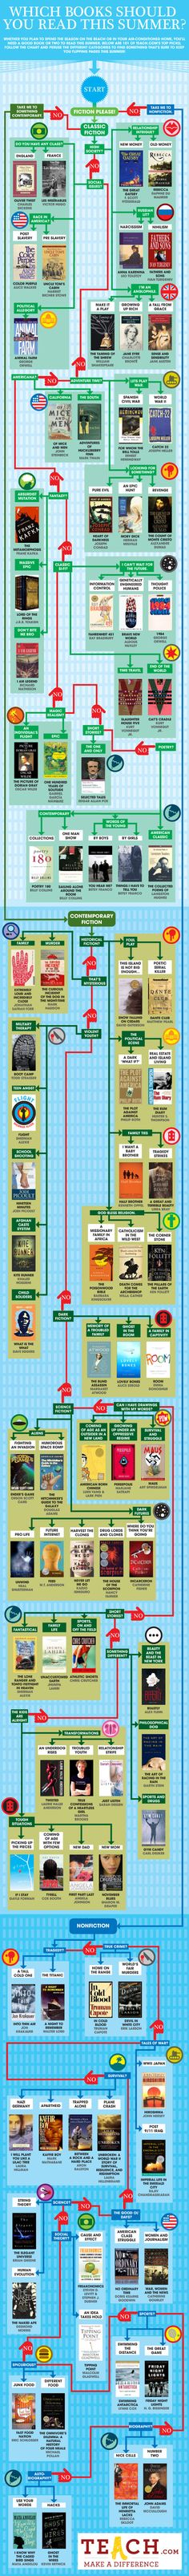 The great summer reading flowchart. Use it to pick what you should read this summer!